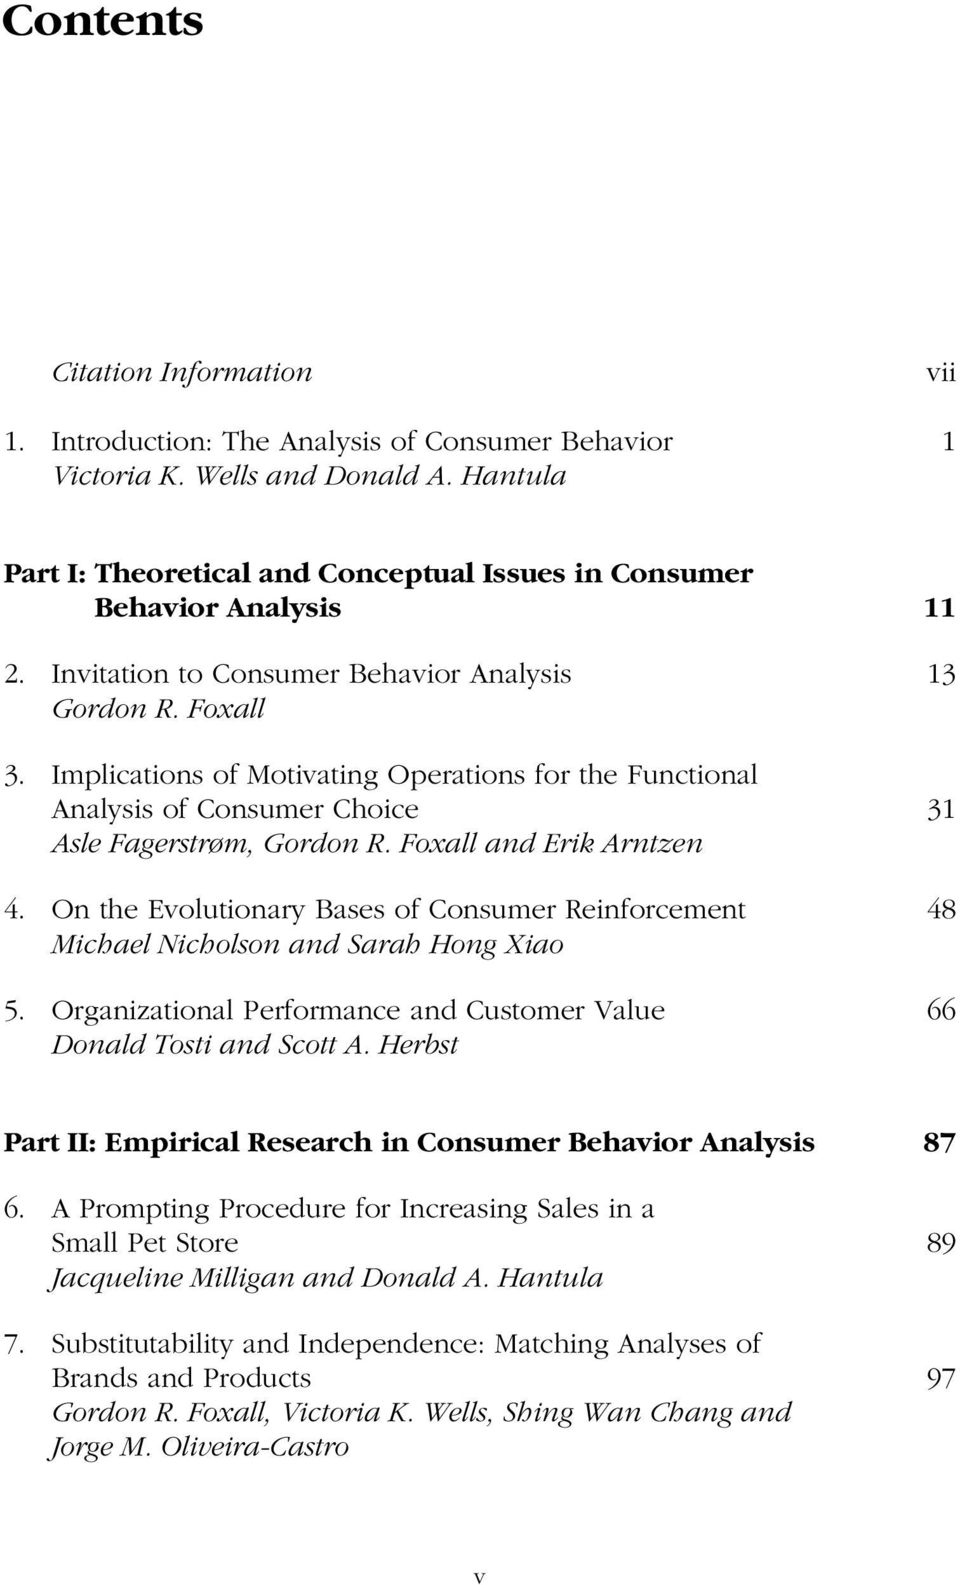 journal of consumer behaviour pdf